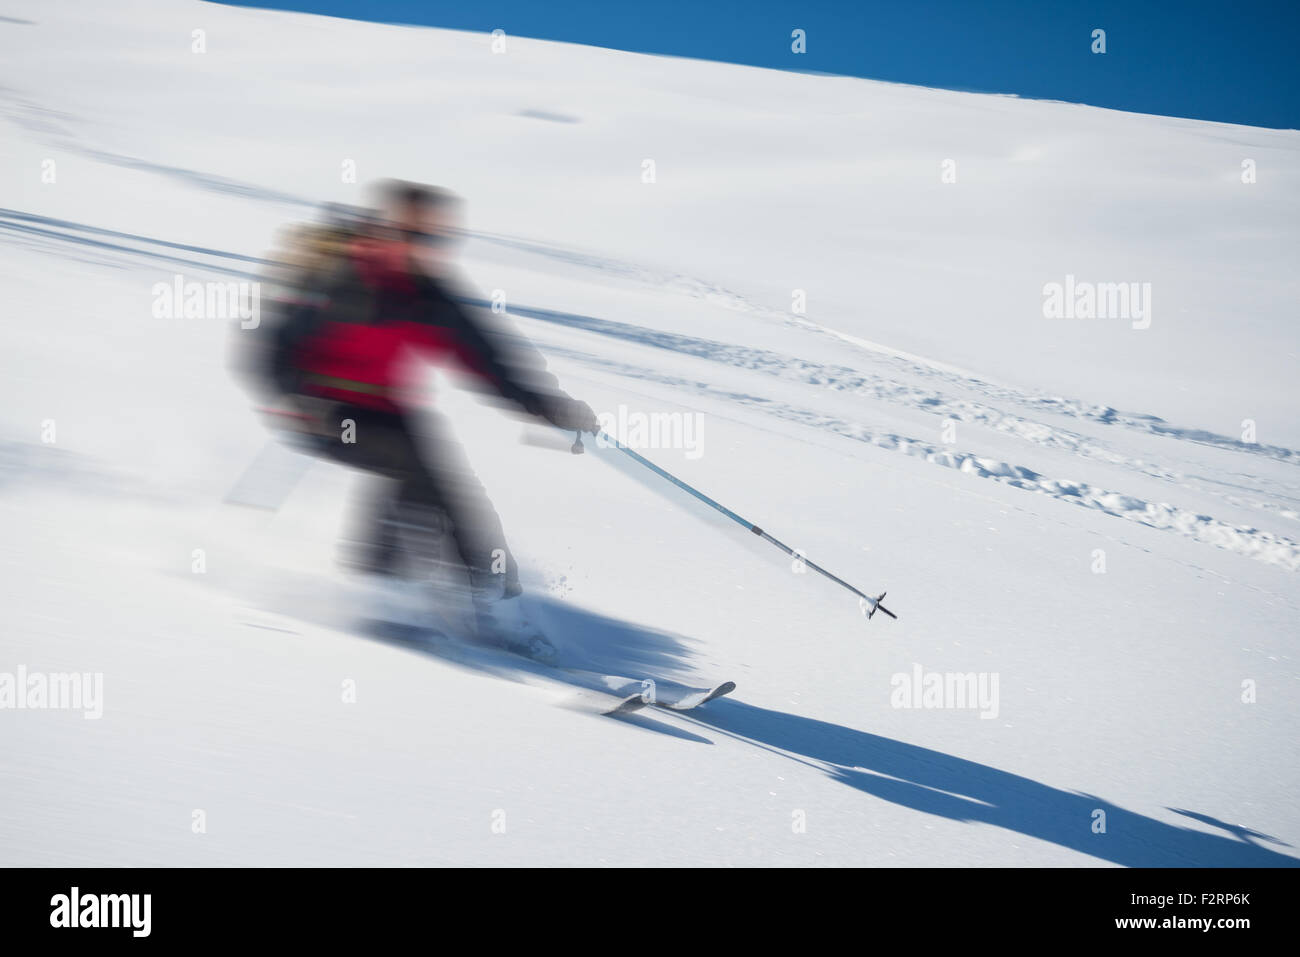 One person skiing downhills off piste on snowy slope in the italian Alps, with bright sunny day of winter season. - Stock Image